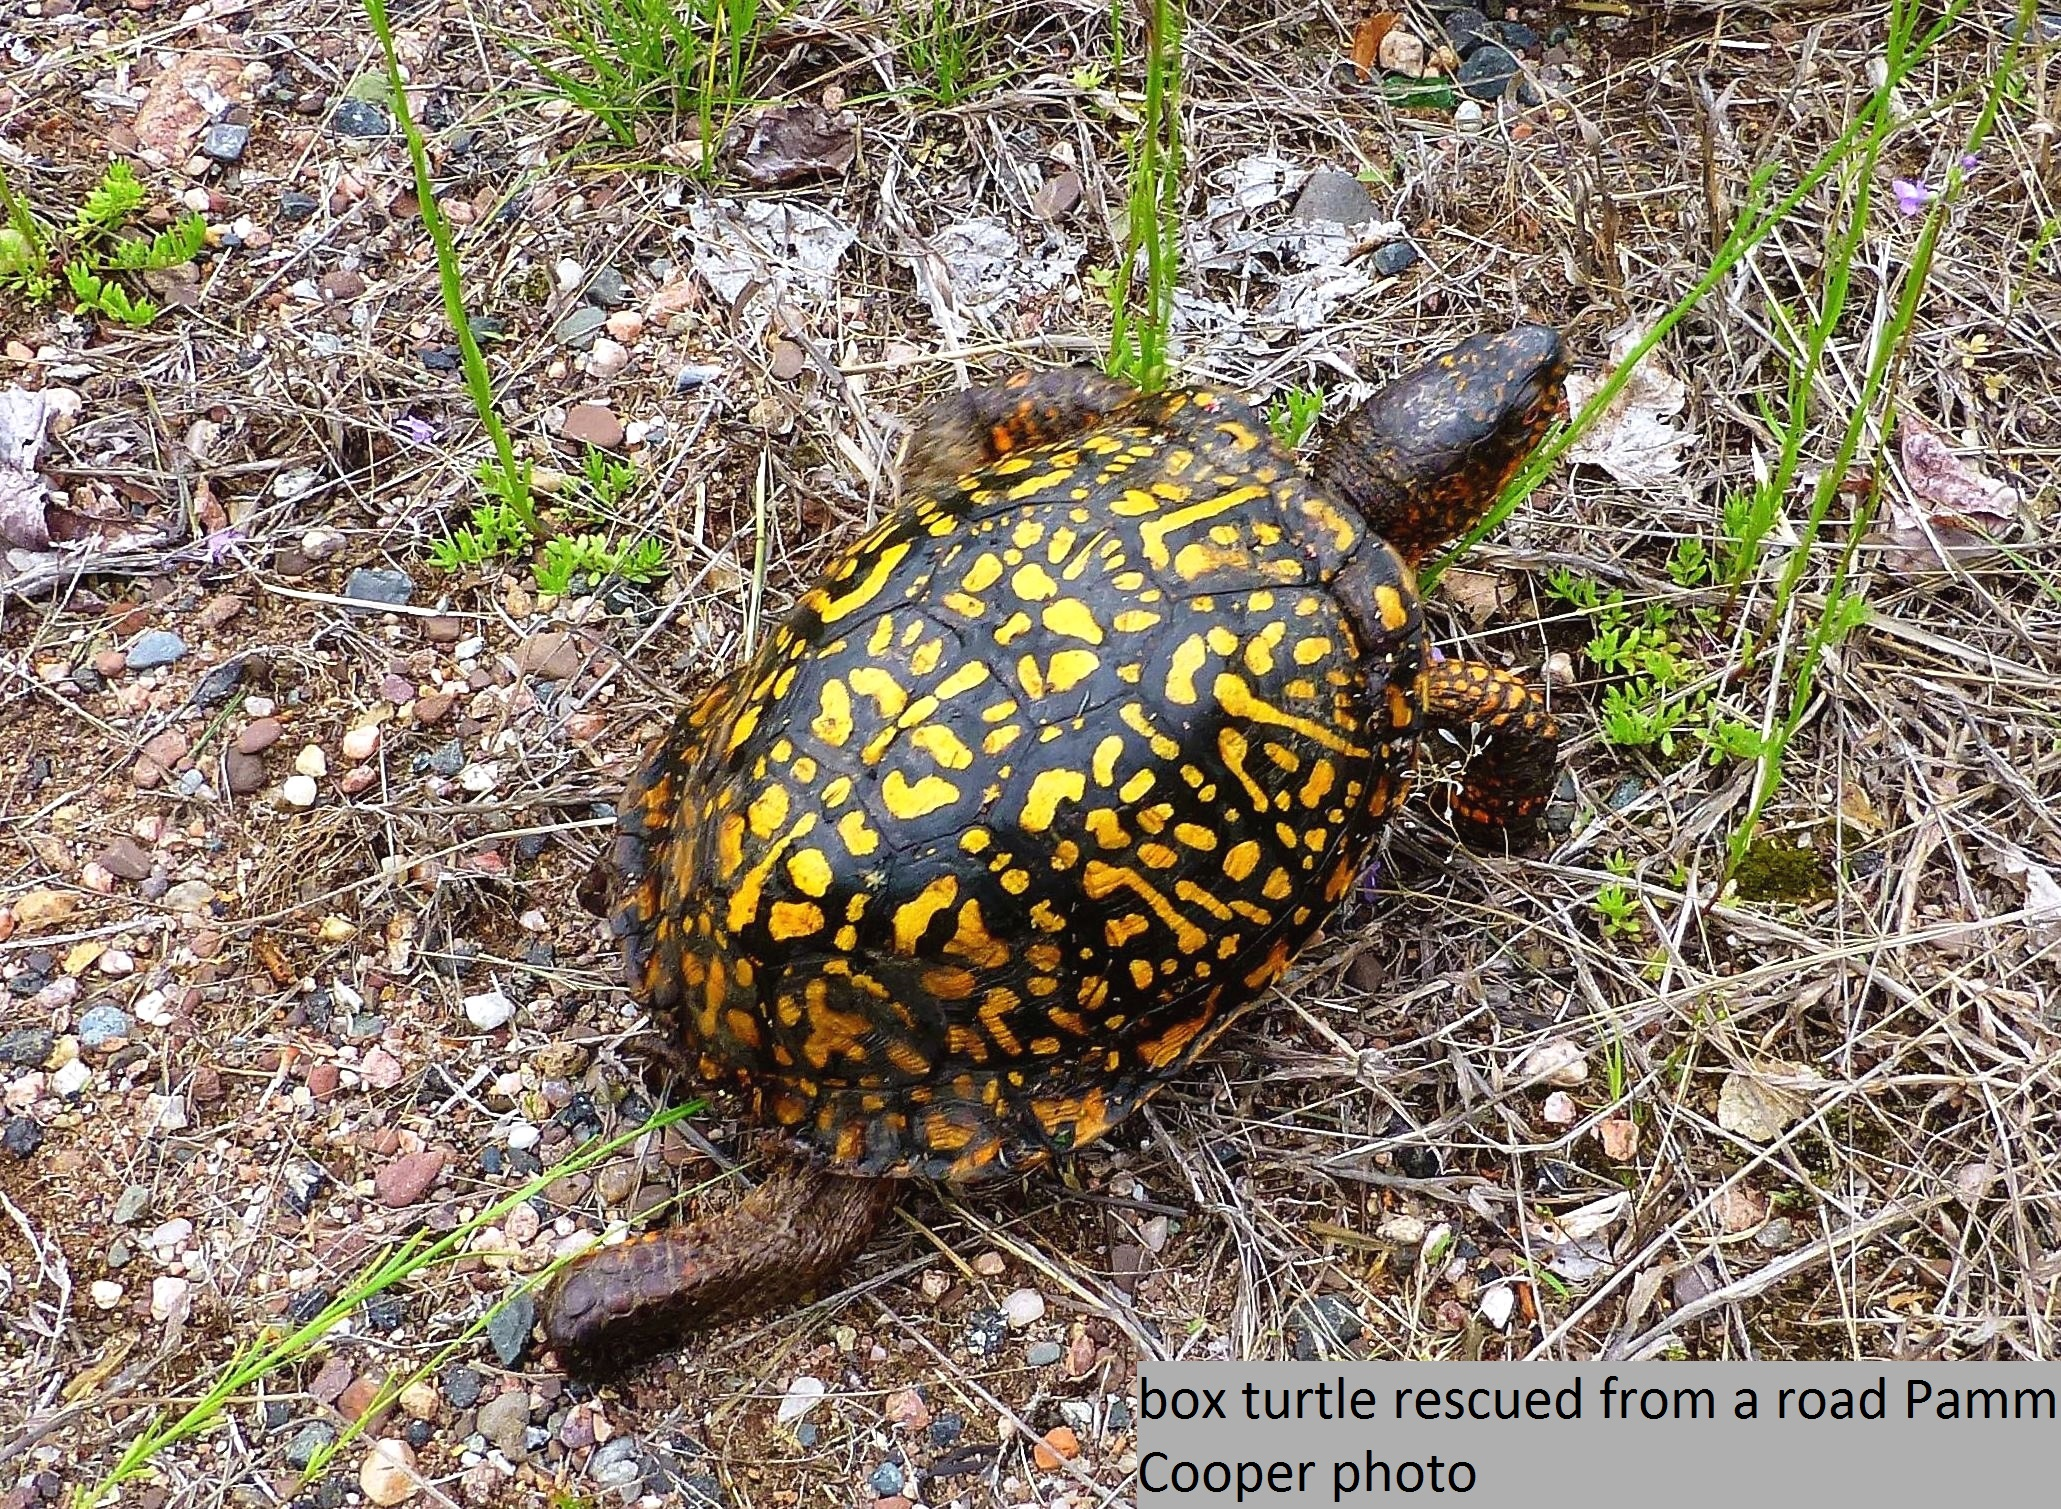 box turtle crossed road day after rain 5-30-16 Pamm Cooper phot copyright 2016